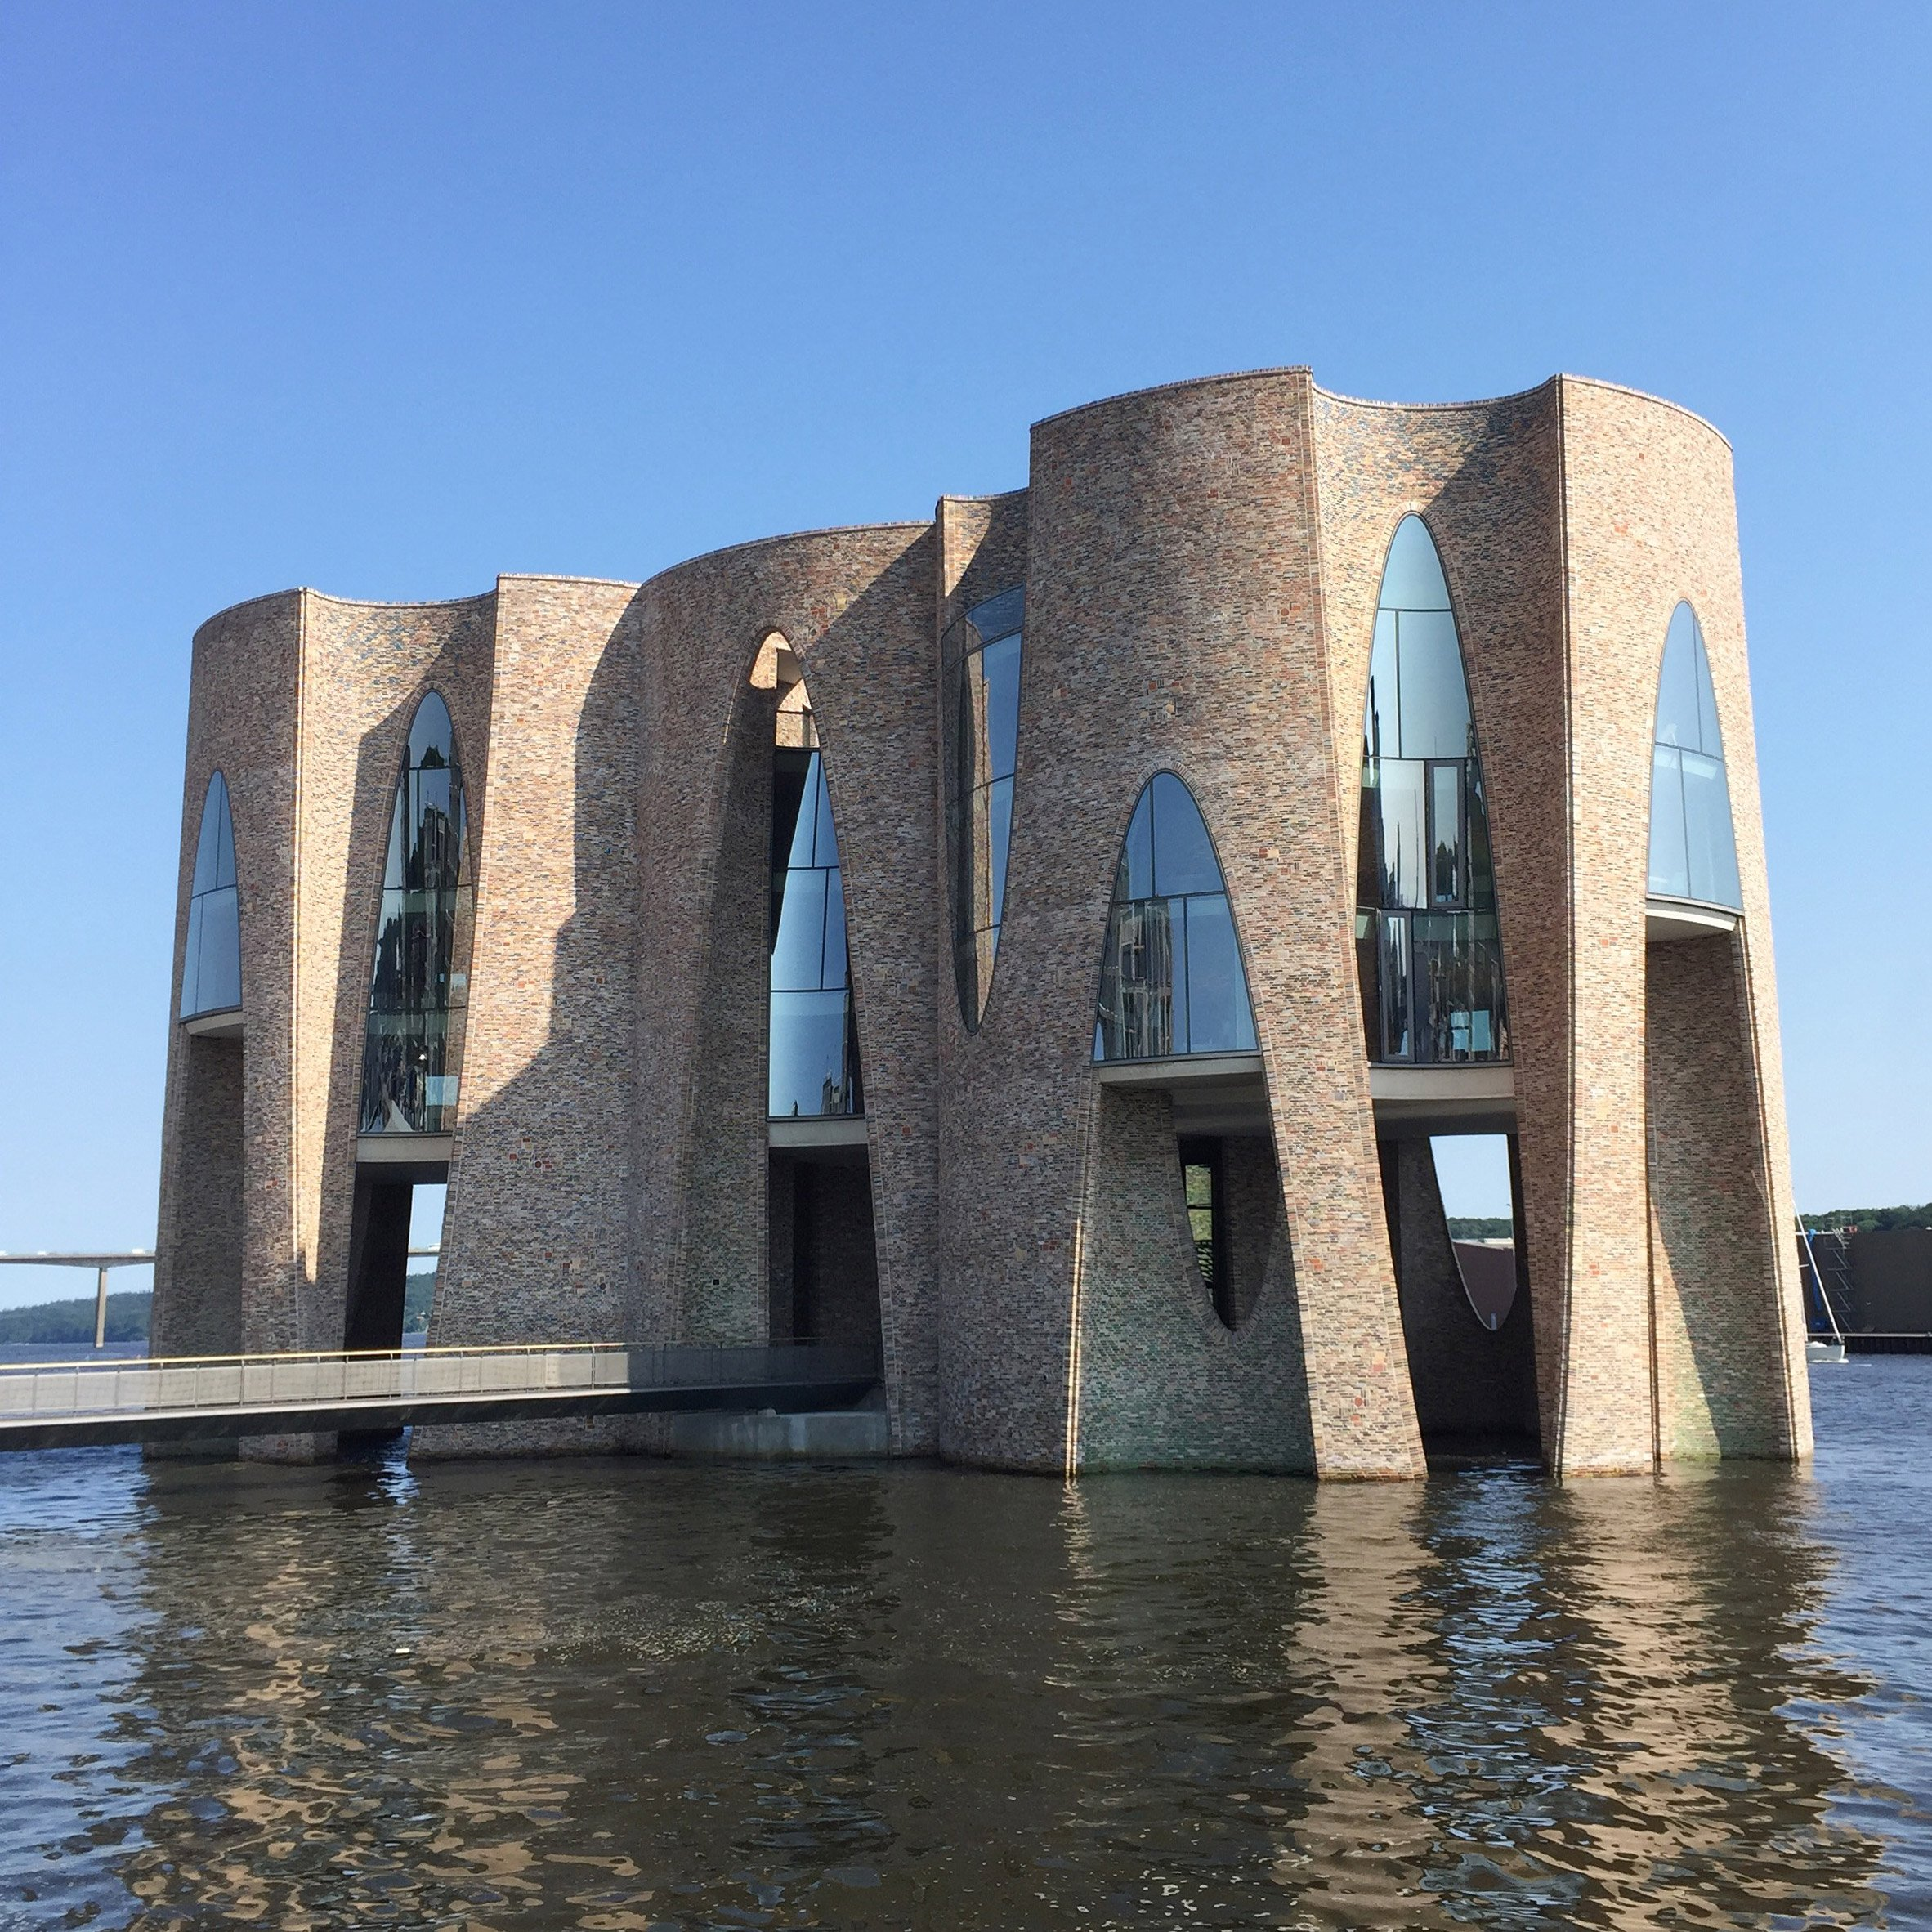 Olafur Eliassons First Building Is A Castle Like Office In A Danish Fjord